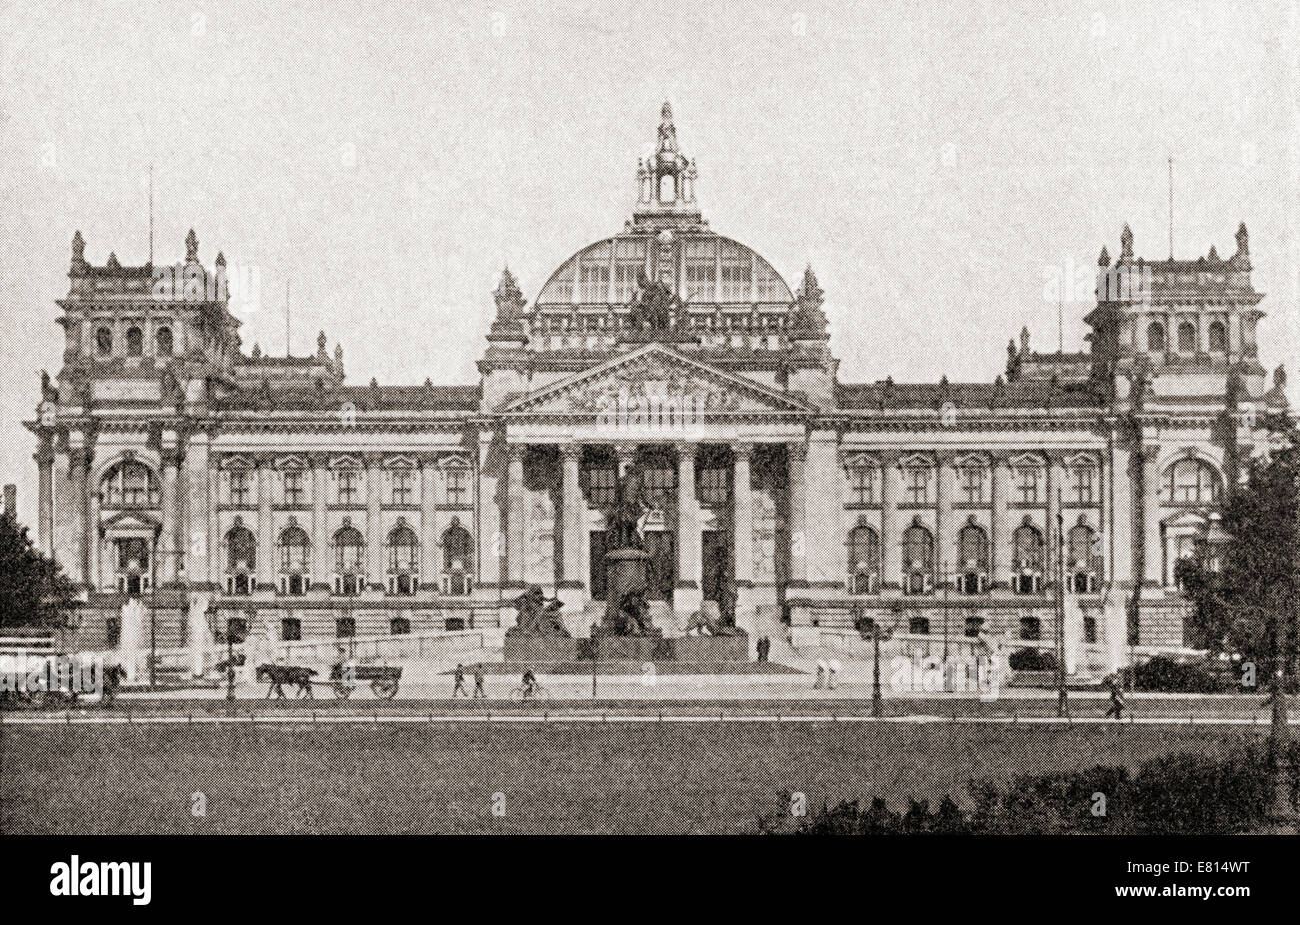 The Reichstag building, Berlin, Germany prior to the great war.  From The History of the Great War, published c. - Stock Image